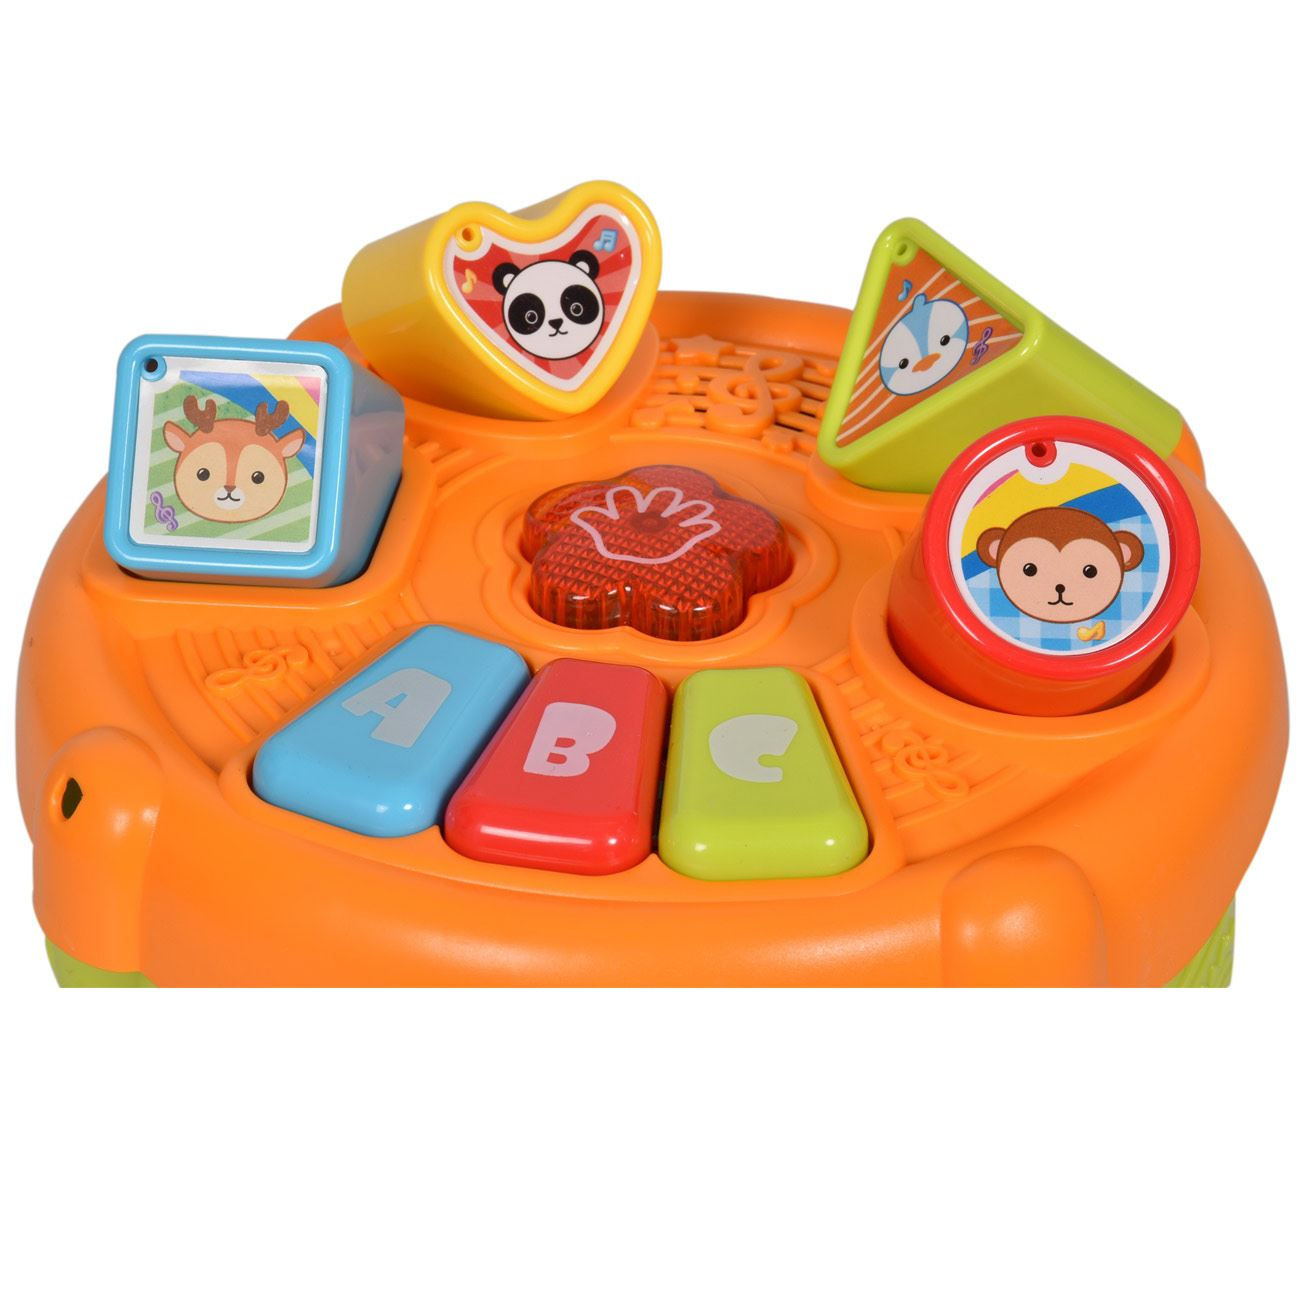 Kids Play Learn Activity Toy Drum Block Sorter Play set Funny Music Xmas Gift 3+